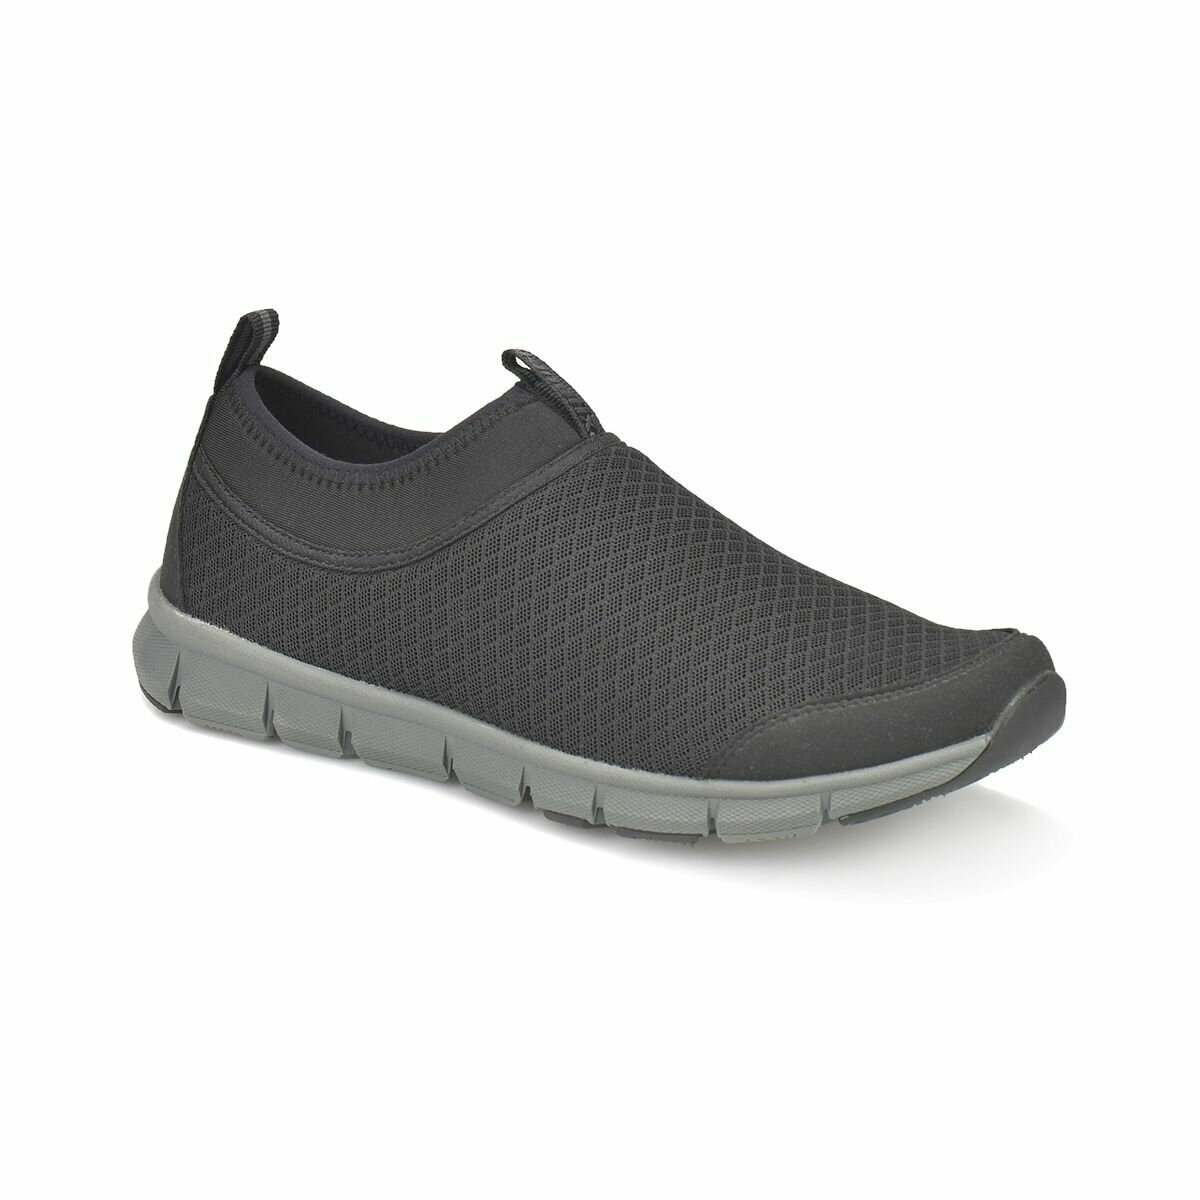 FLO VOTEN Black Men 'S Comfort Shoes KINETIX